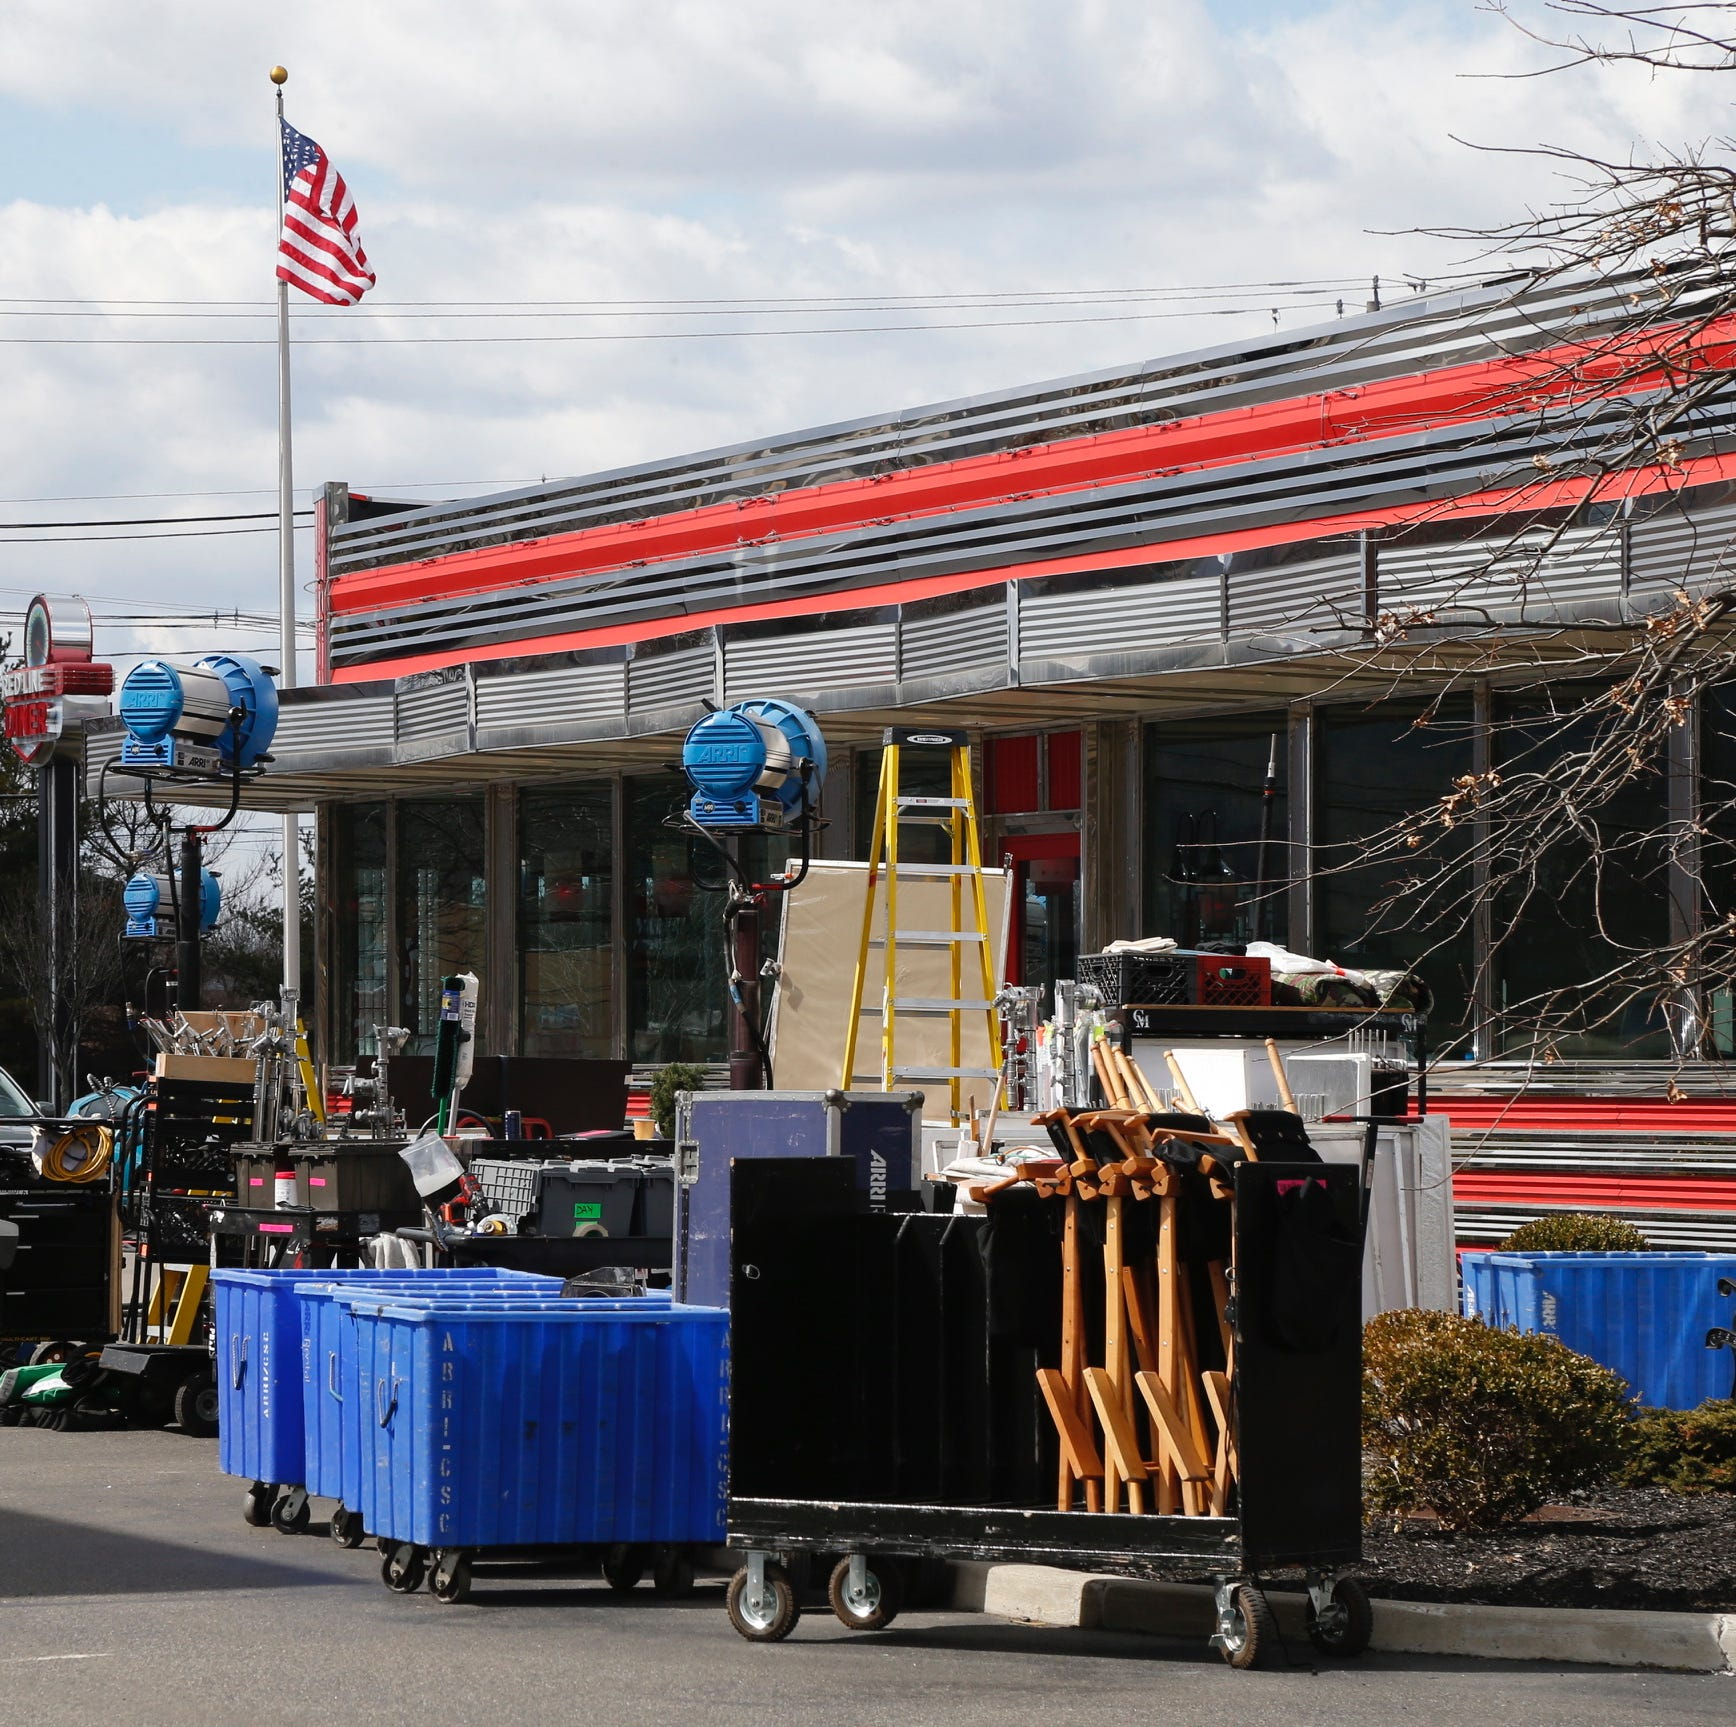 Movie filming at Red Line Diner in Fishkill 'went perfect'